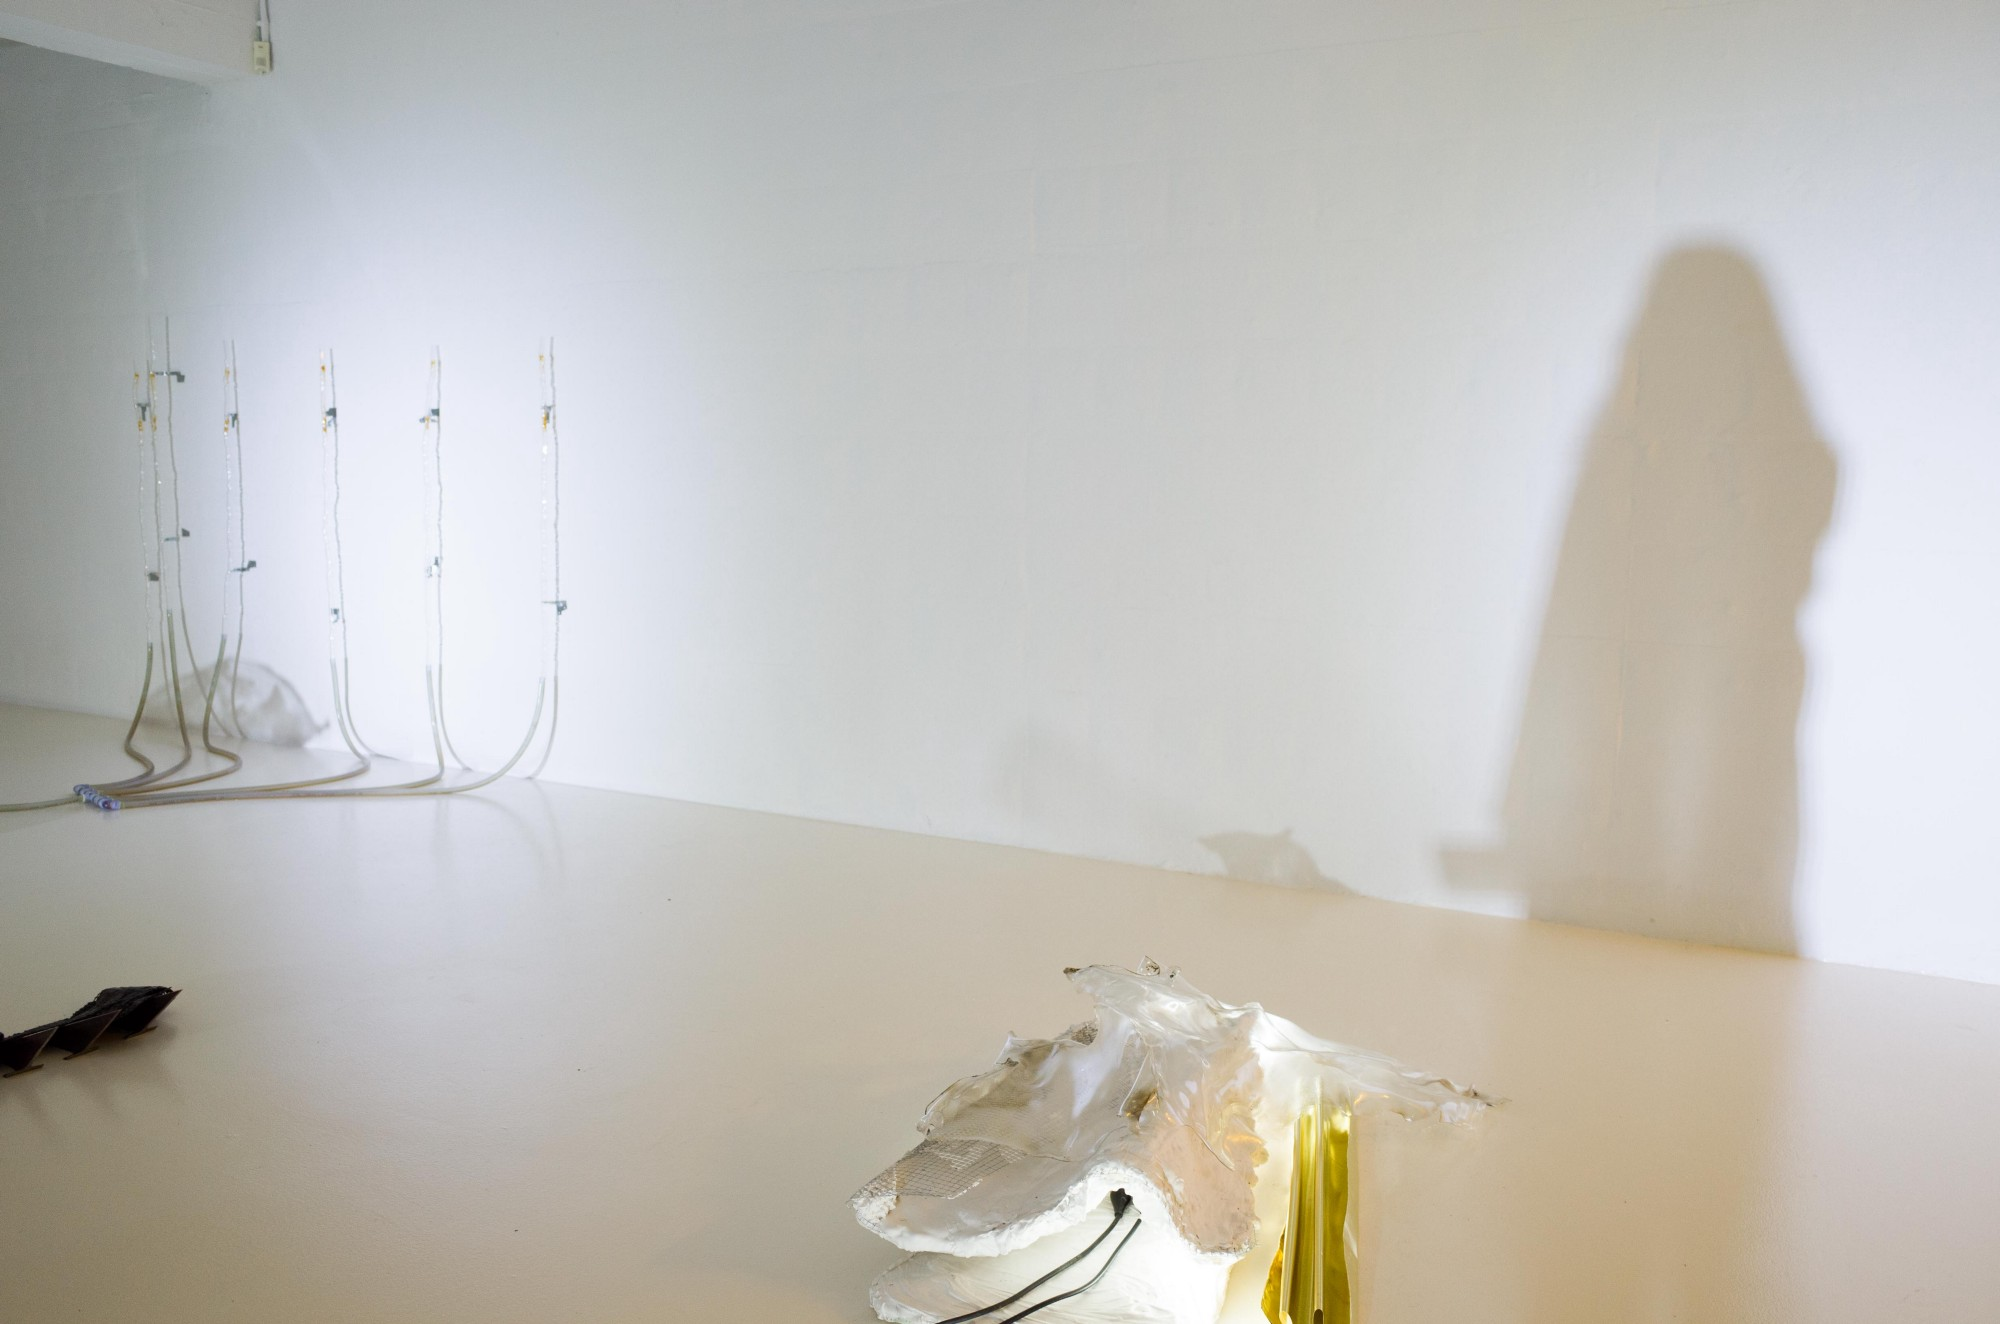 My shadow on a blank white wall of an art installation.